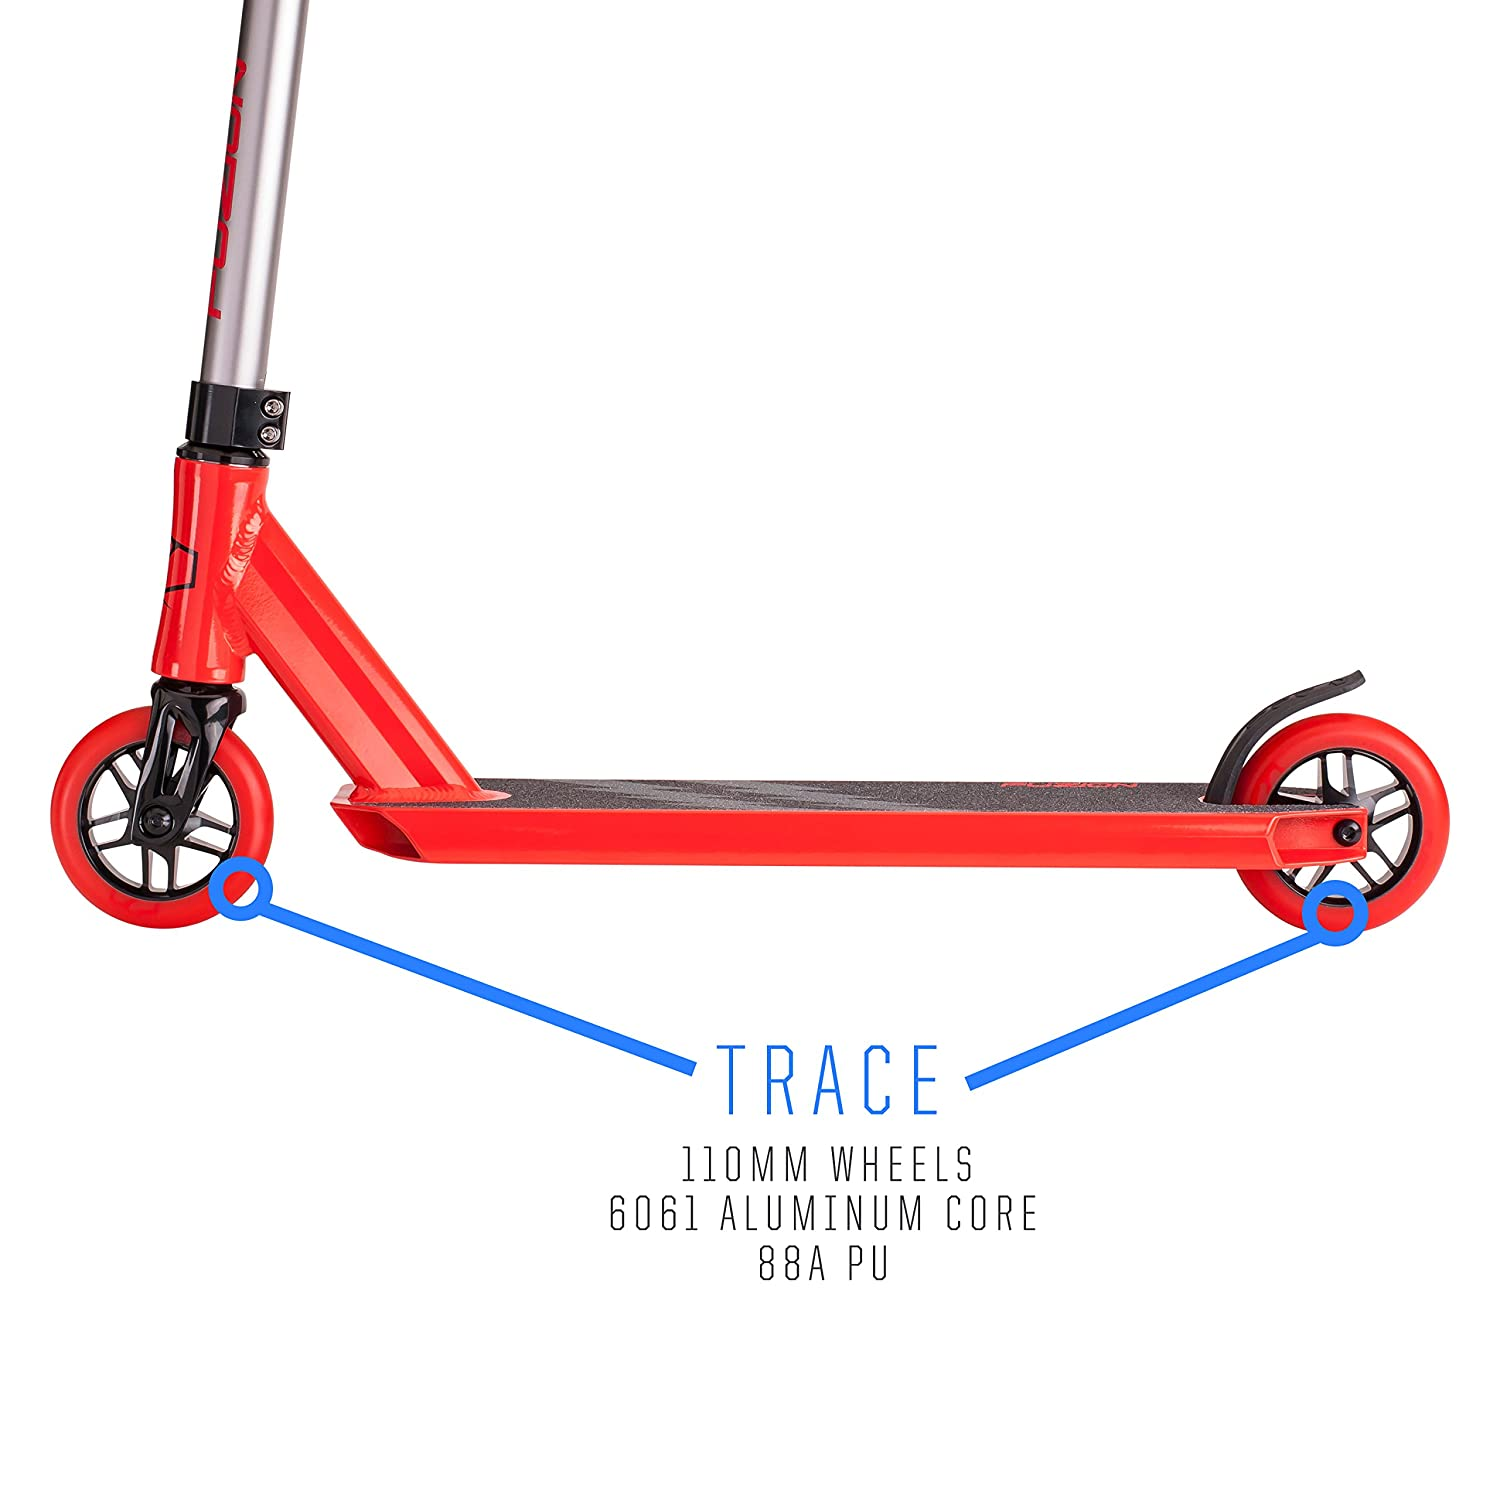 Smooth Freestyle Kick Scooter for Boys and Girls Trick Scooter Intermediate and Beginner Stunt Scooters for Kids 8 Years and Up Teens and Adults Durable Fuzion Z250 Pro Scooters